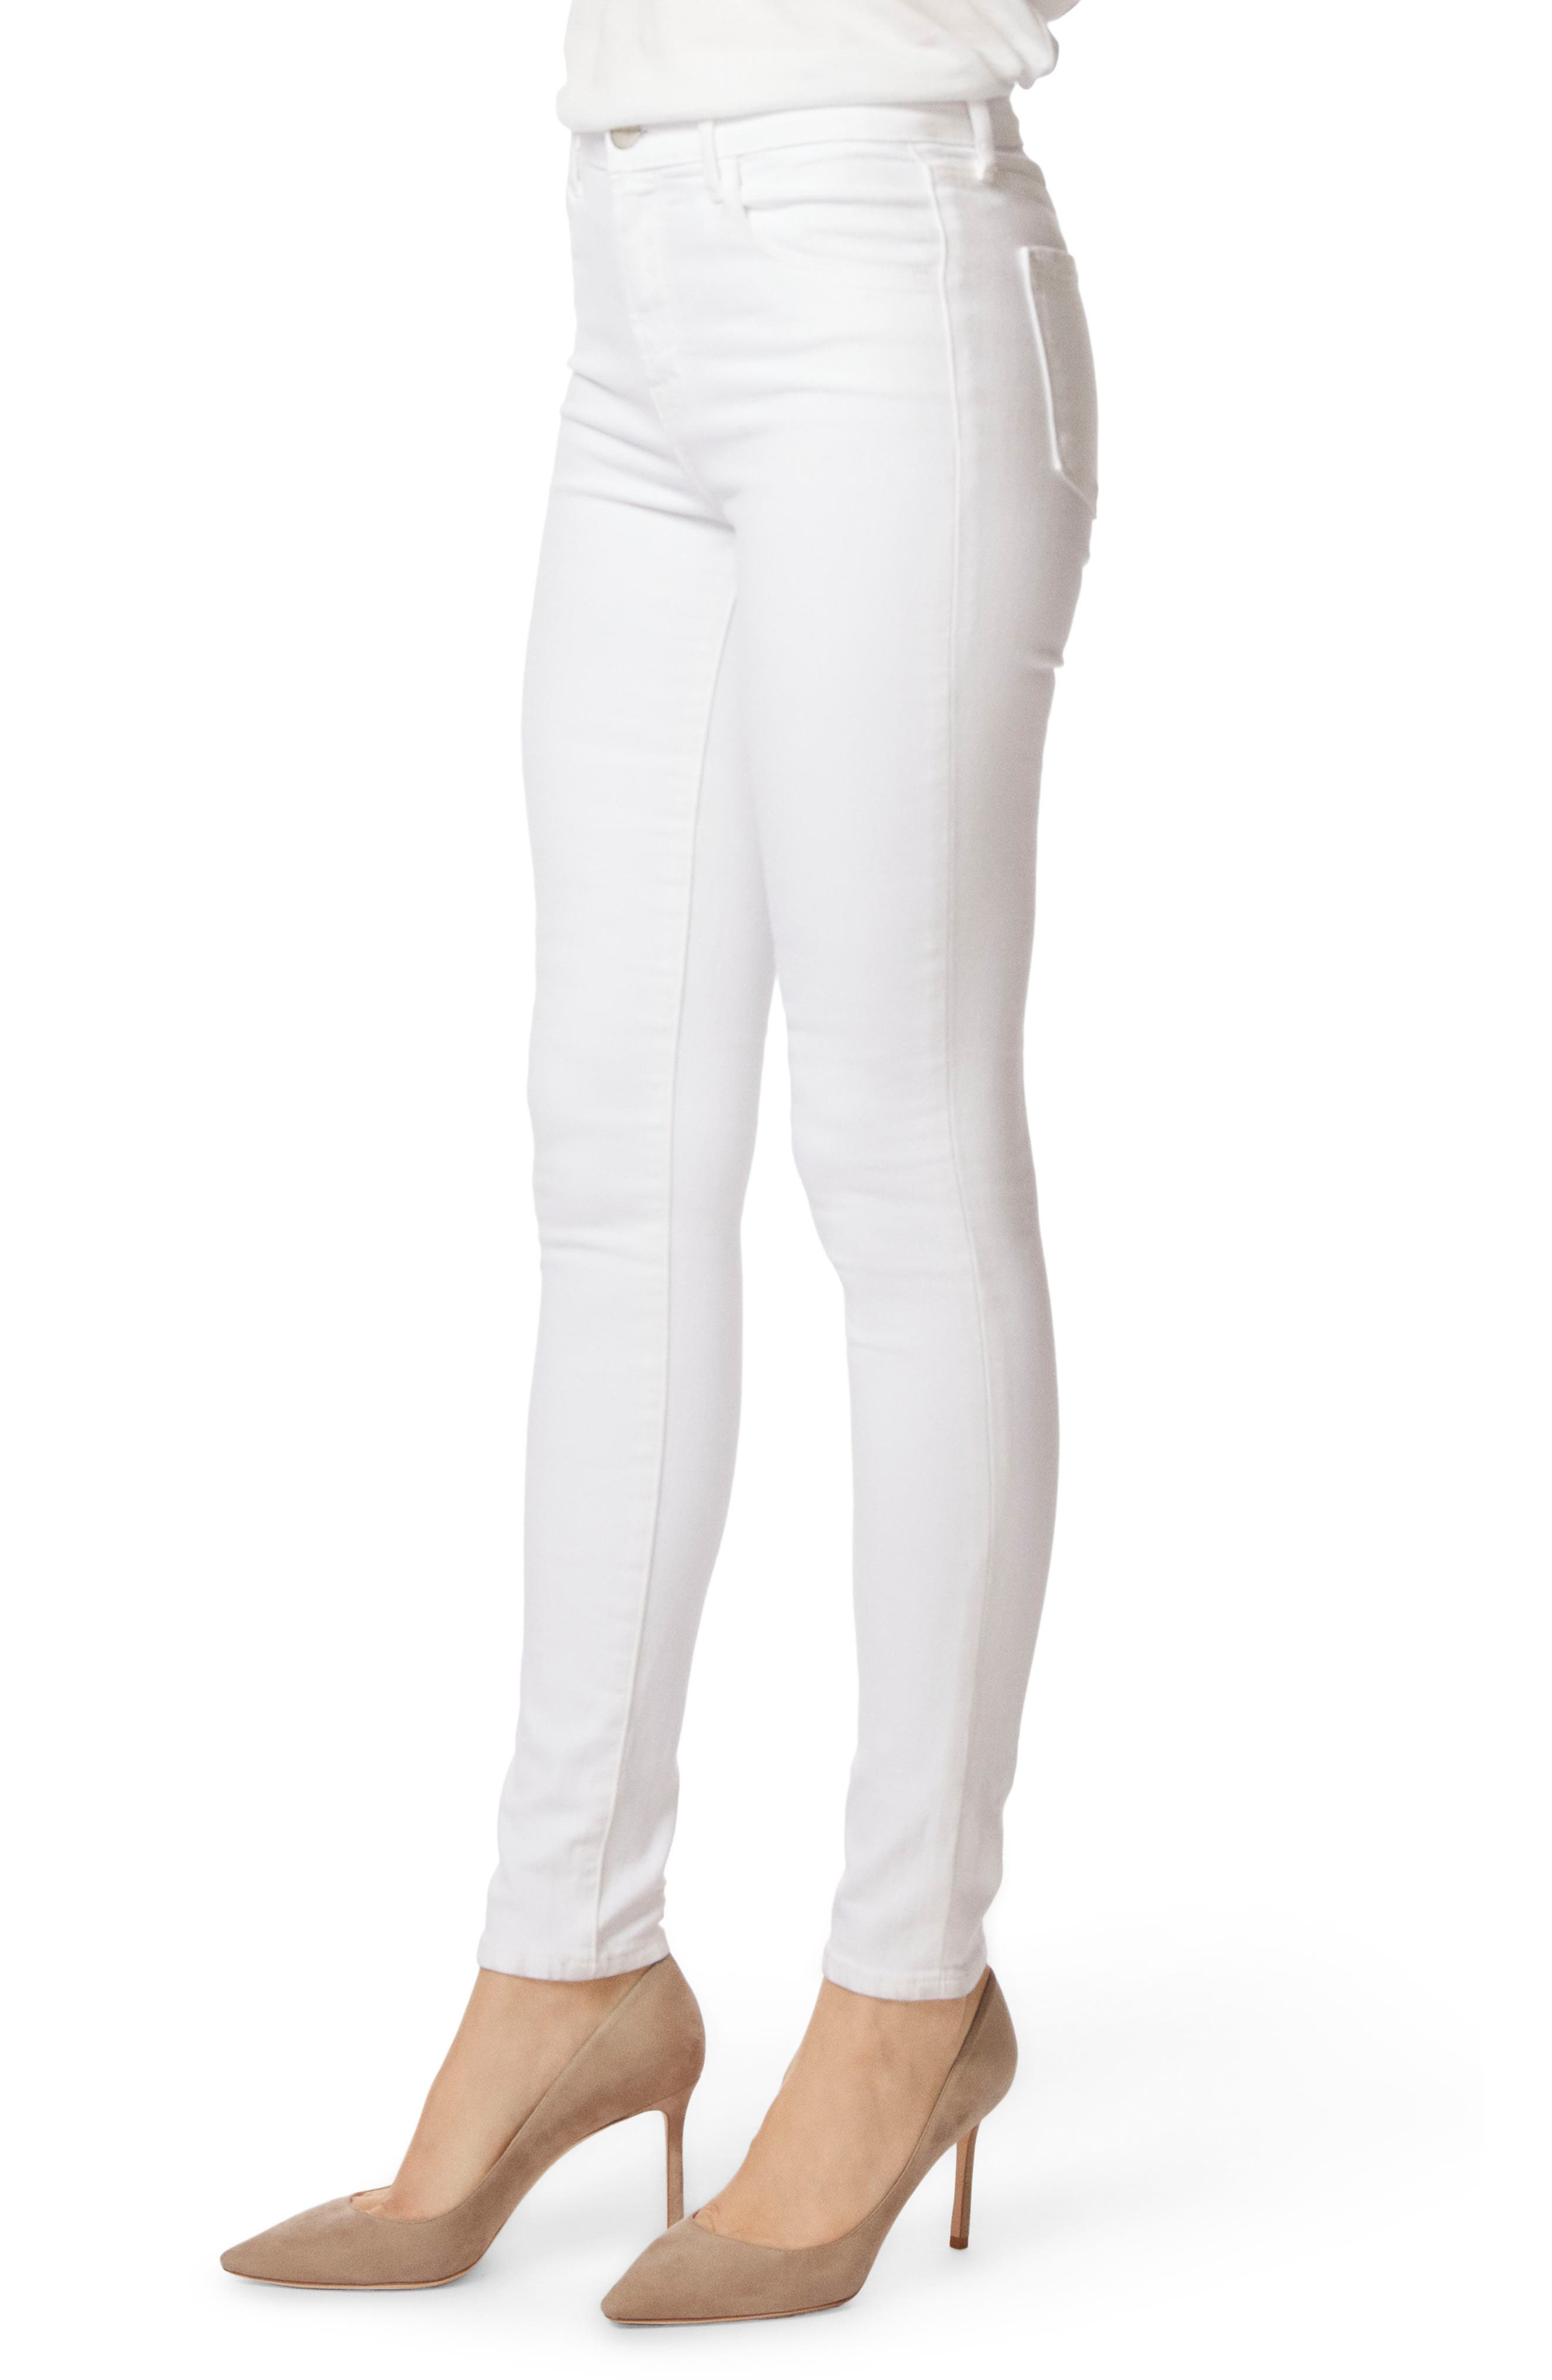 2311 Maria High Waist Super Skinny Jeans,                             Alternate thumbnail 4, color,                             Blanc